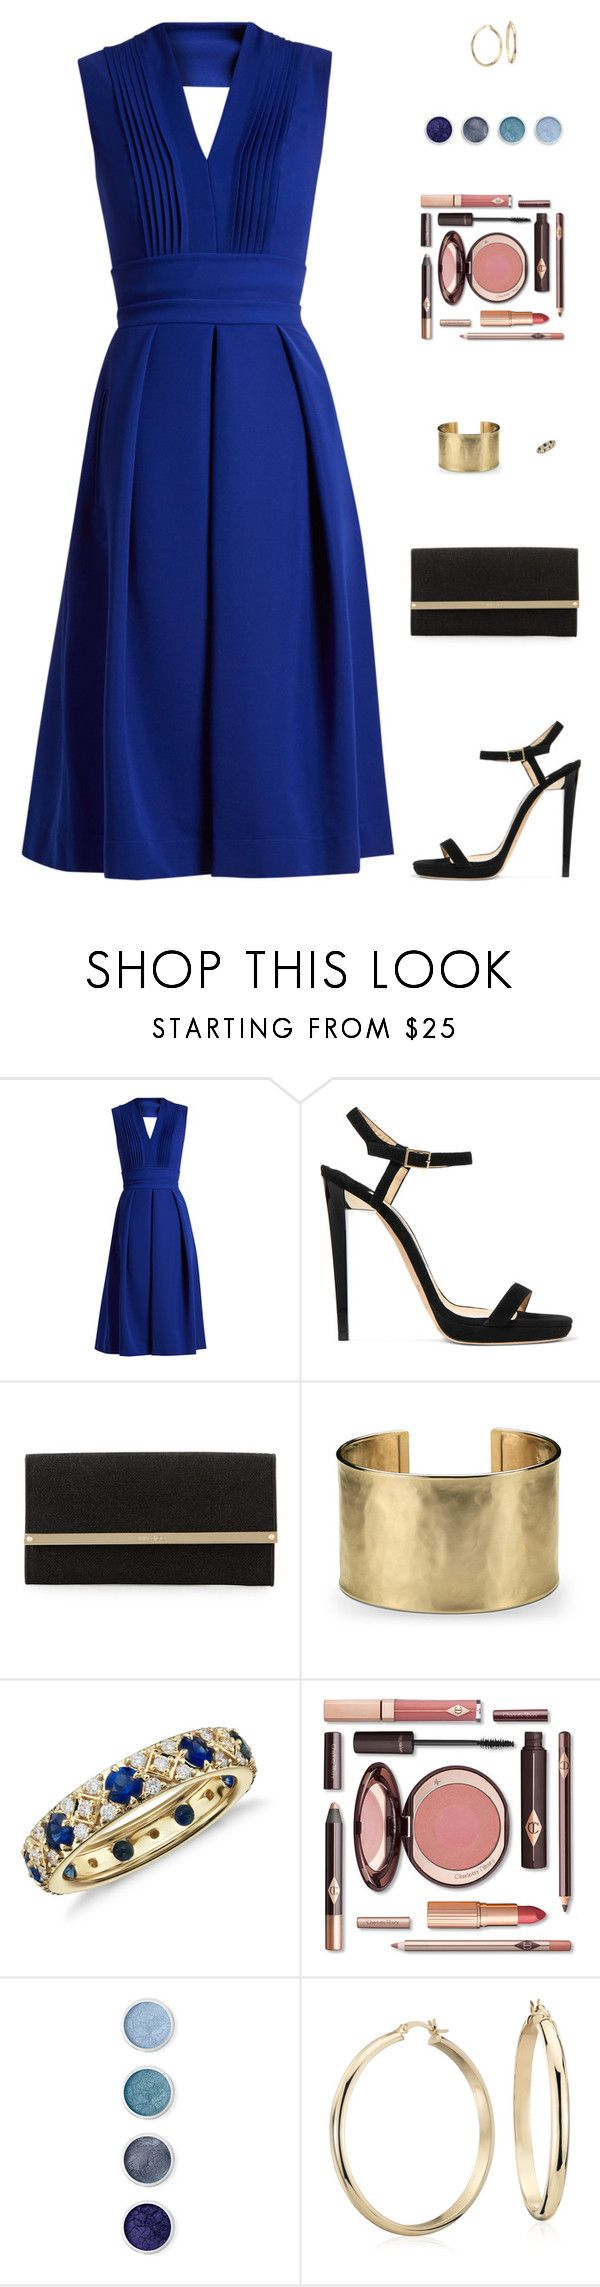 """Untitled #5046"" by mdmsb on Polyvore featuring Preen, Jimmy Choo, Blue Nile and Terre Mère"